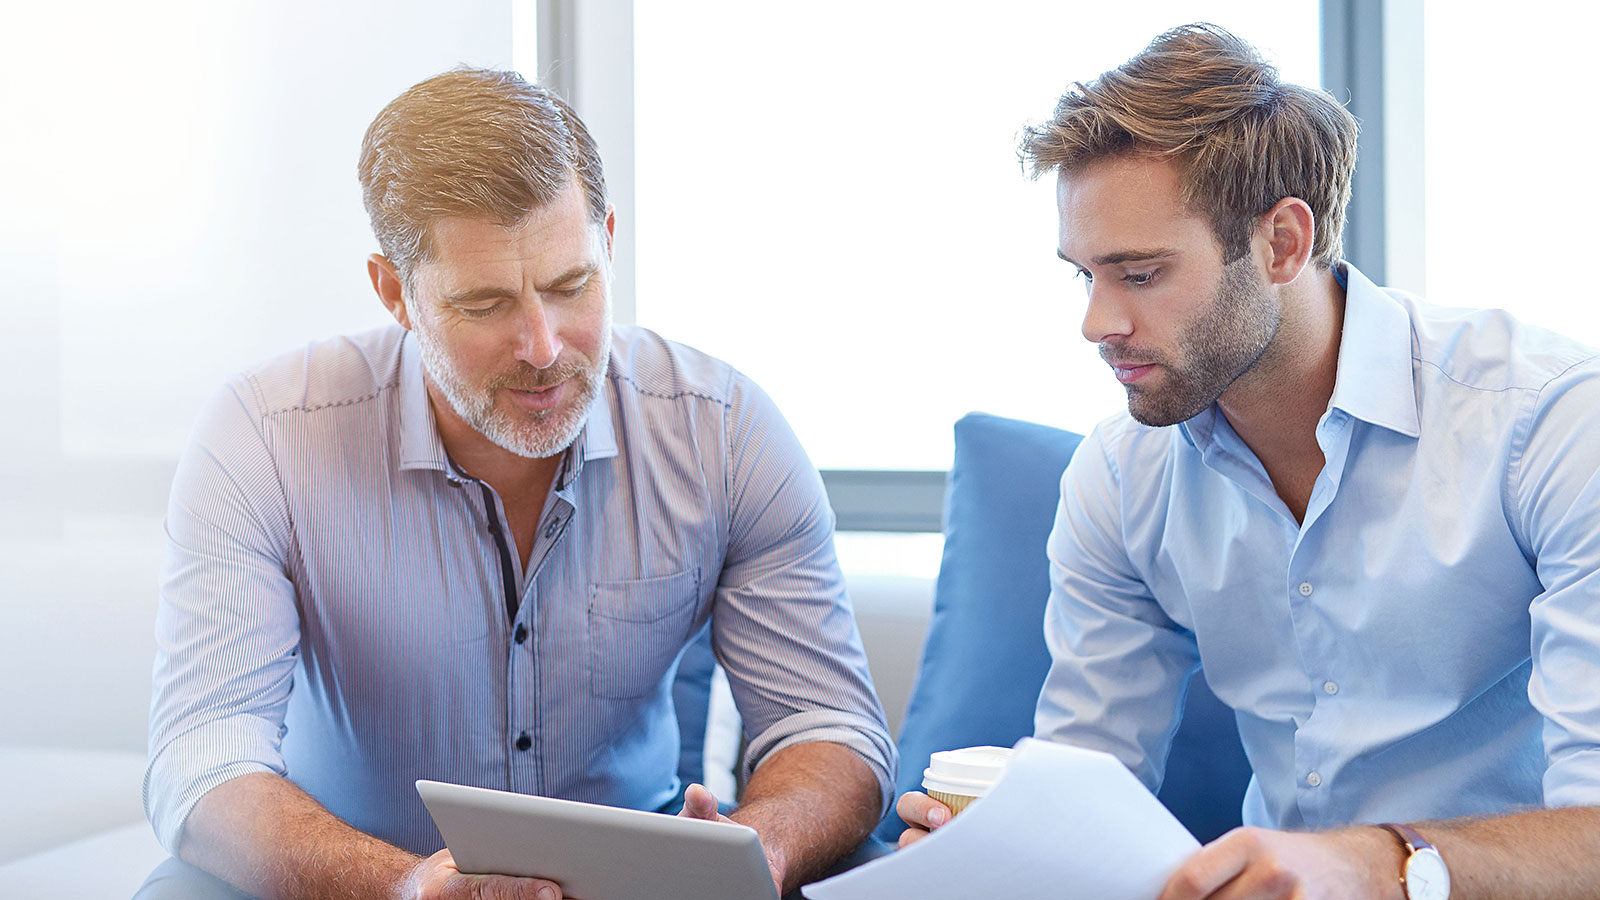 11 characteristics of a quality mentor